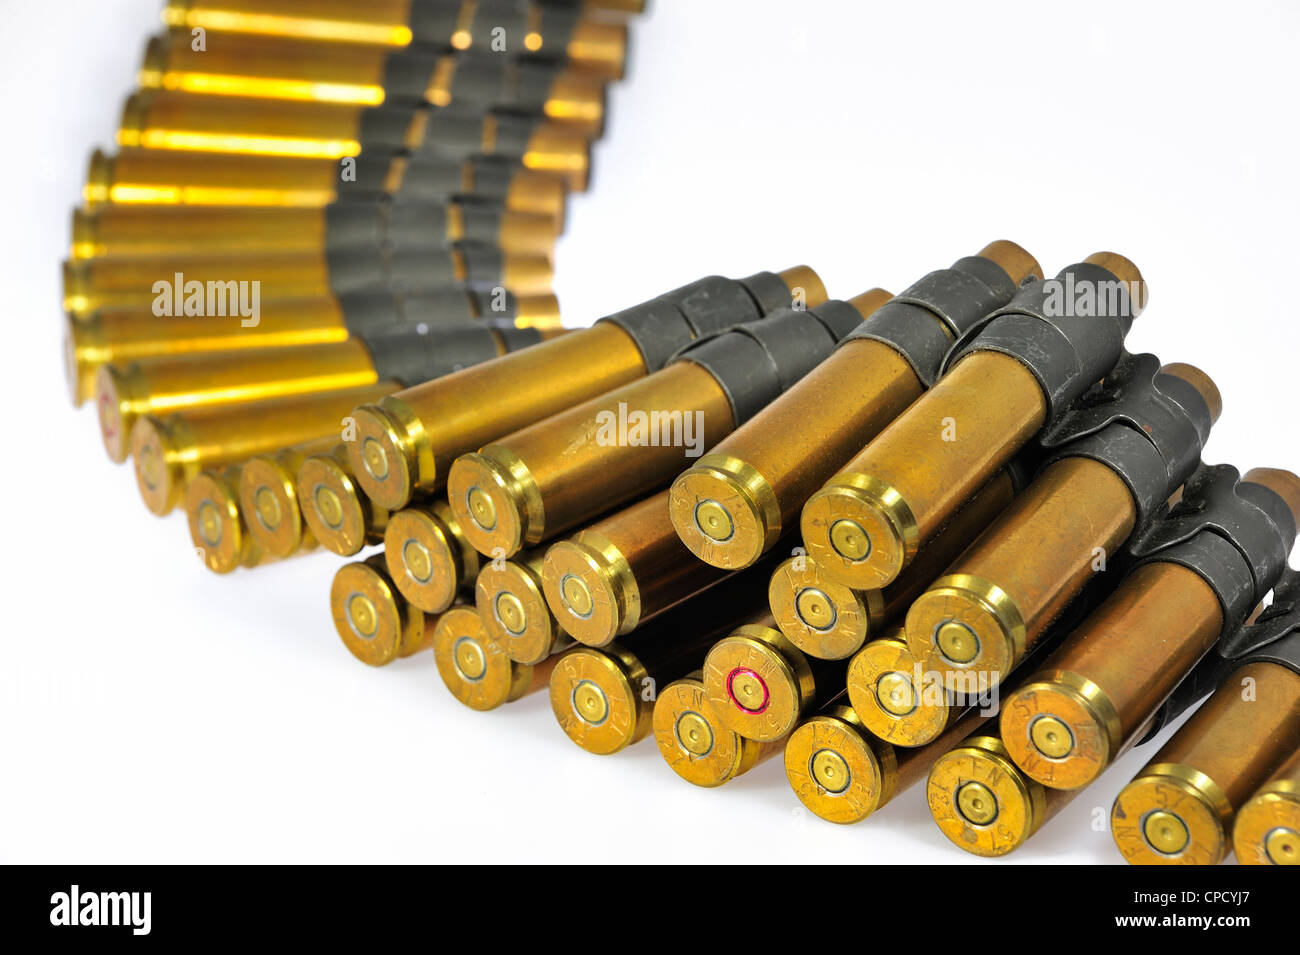 M2 Browning .50 caliber machine gun cartridges in ...